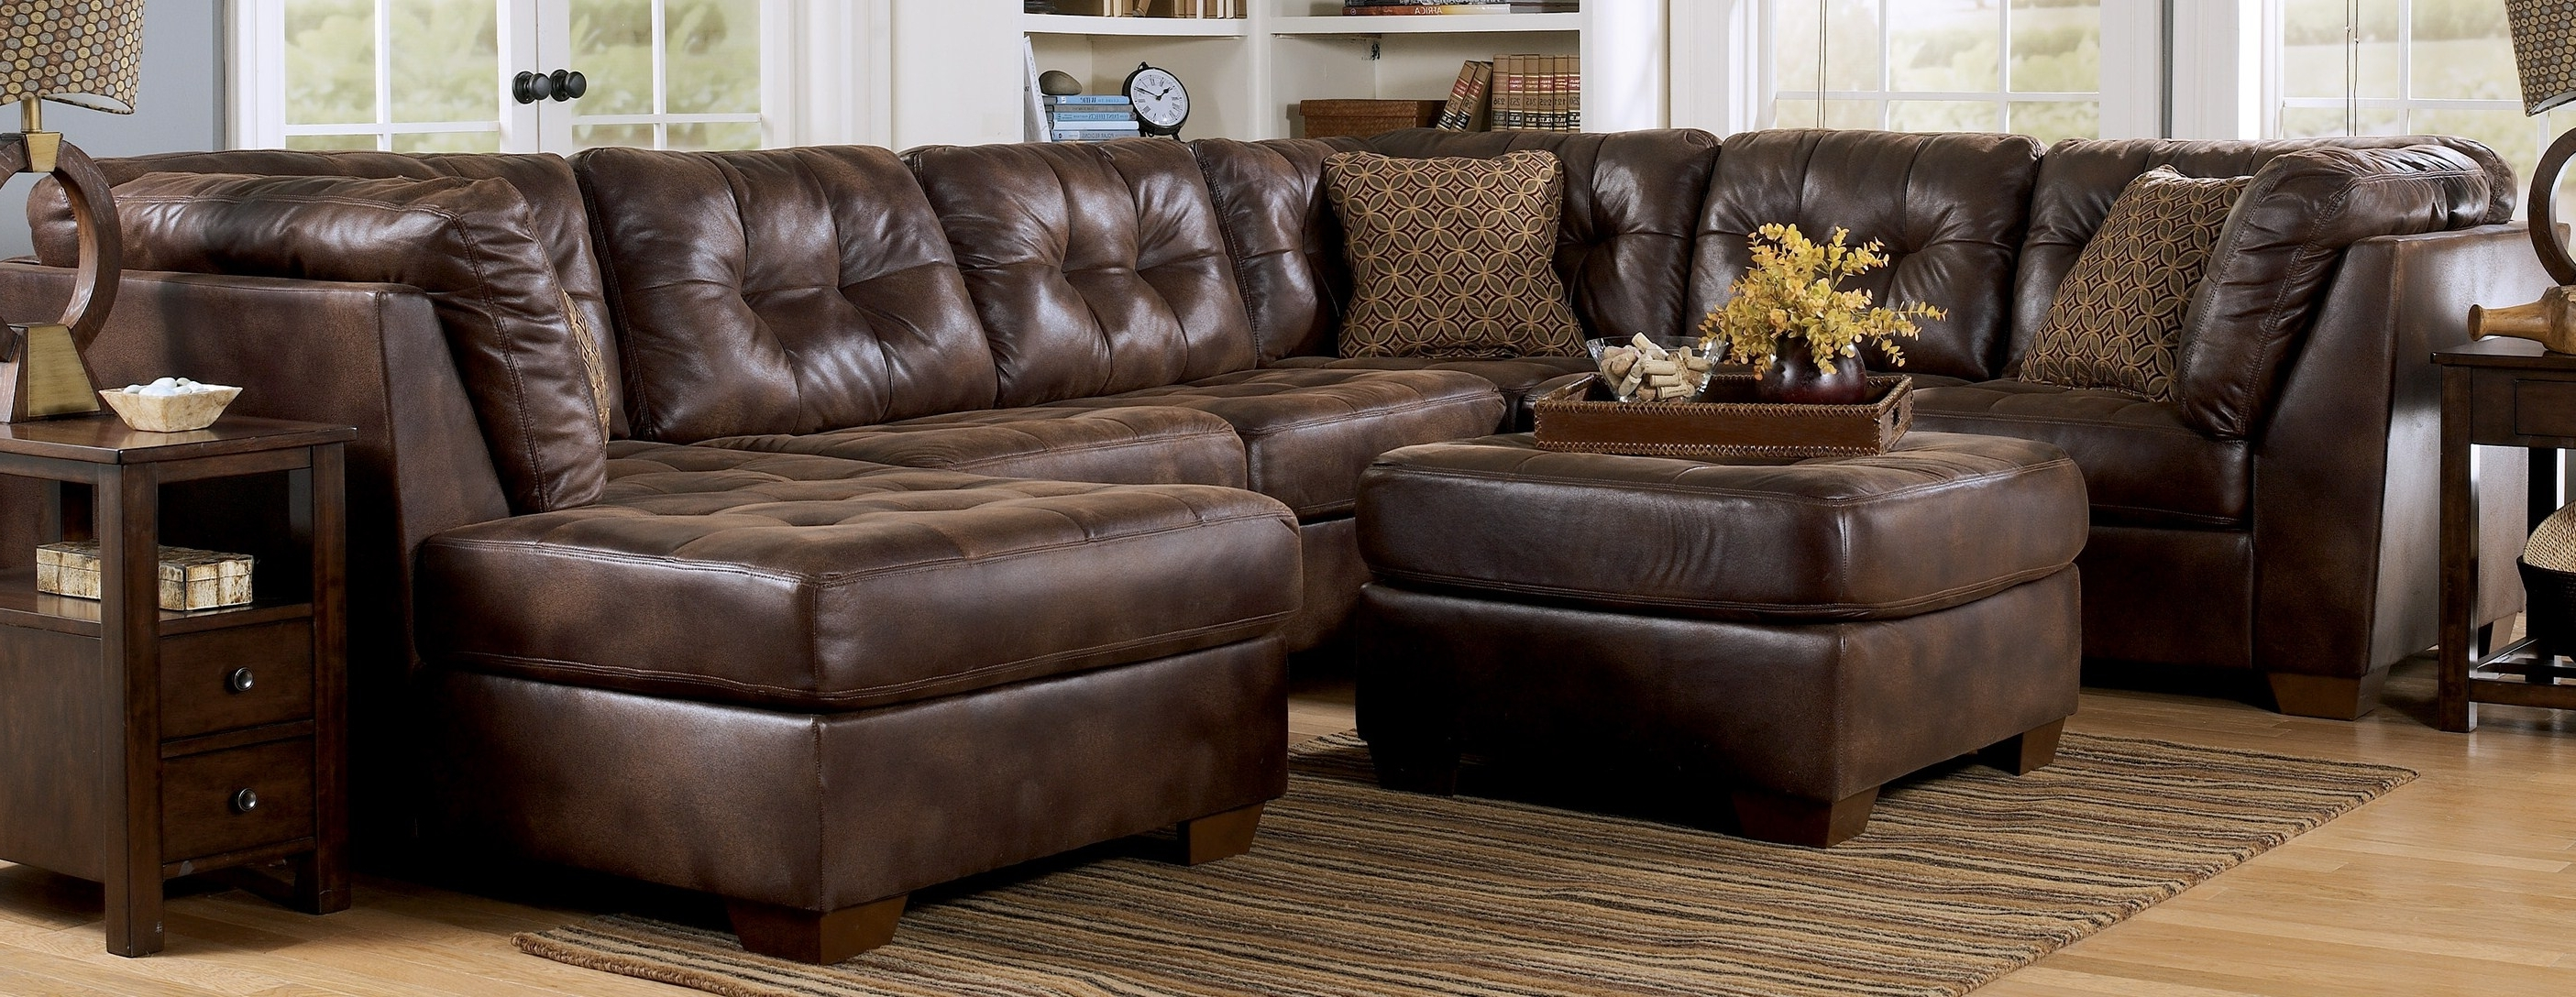 Best And Newest Luxury Leather Sectional Sleeper Sofa With Chaise 34 Contemporary For Chaise Sectional Sleepers (View 2 of 15)